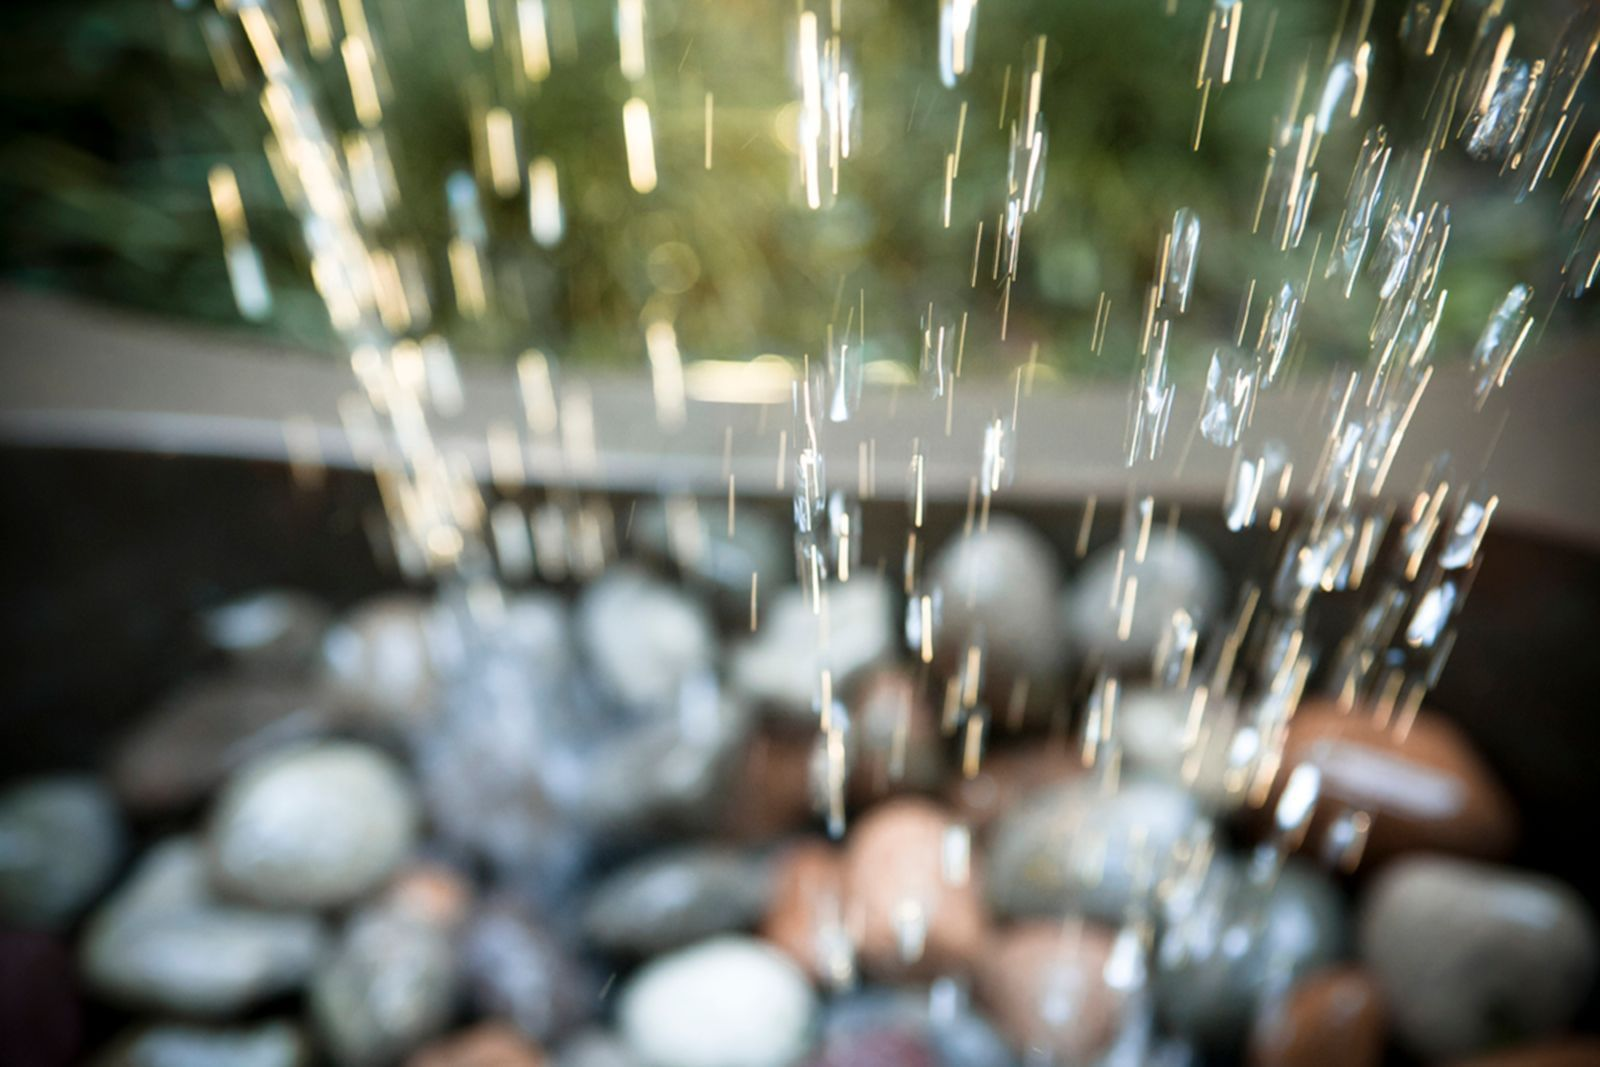 water dripping on stones